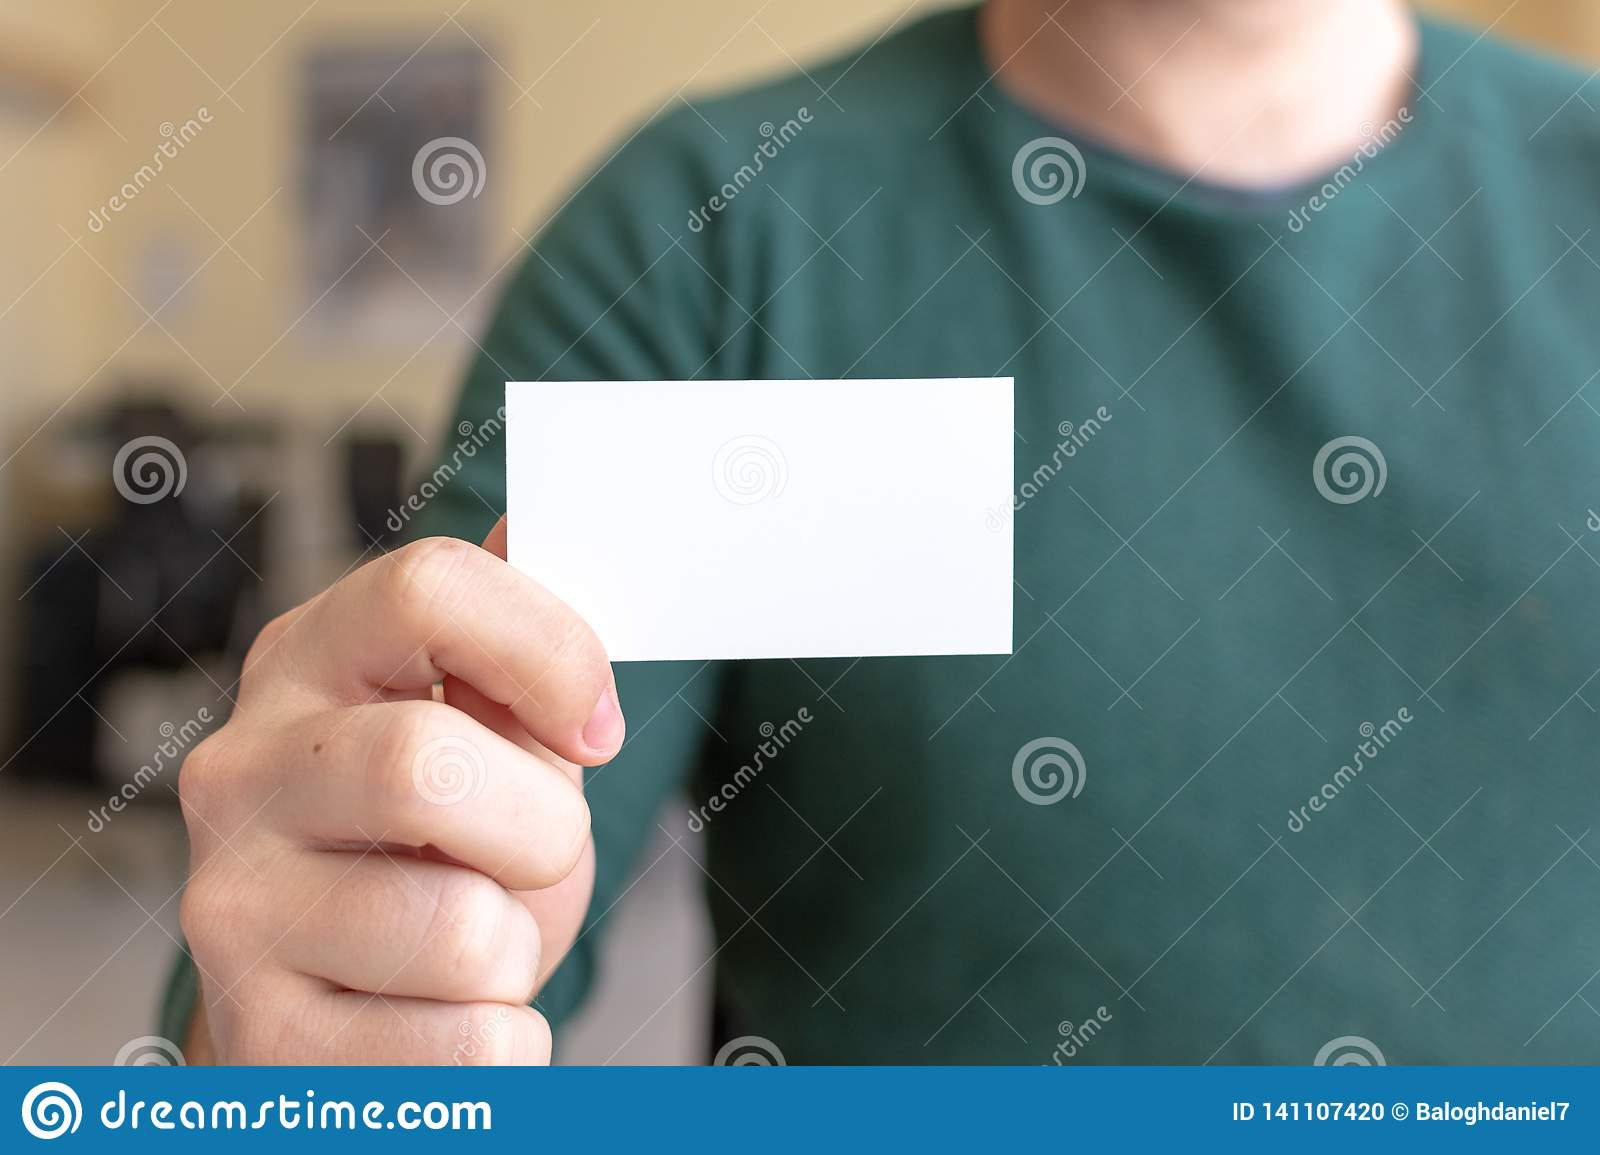 Business Card Mock-Up - Man Holding a Blank Card for Clients. Business Card Template